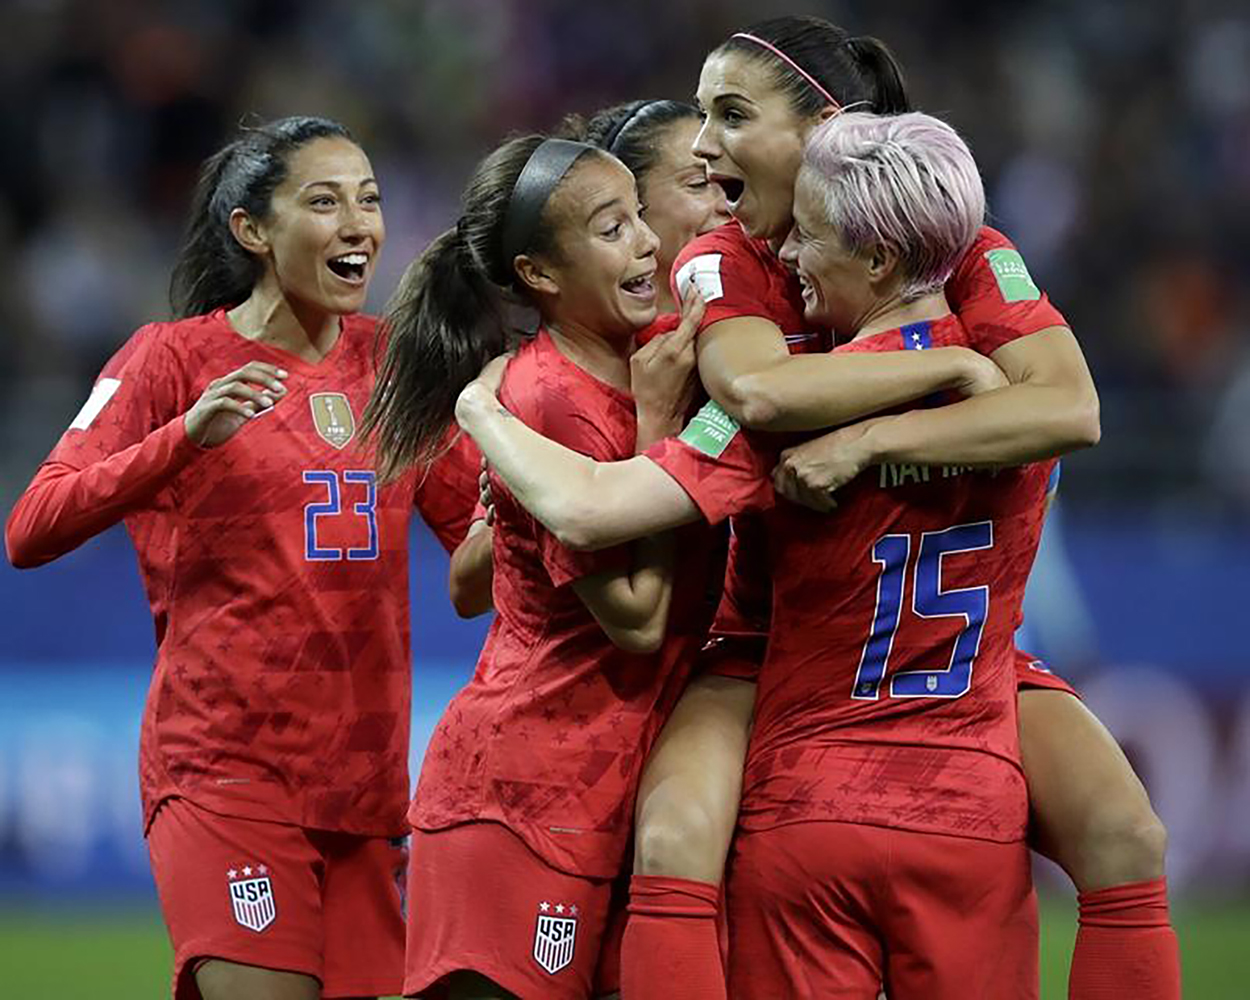 """Alex Morgan of the United States celebrates with teammates after scoring her fifth goal in Tuesday's 13-0 win over Thailand in the Women's World Cup Group F soccer match in Reims, France.  Volkswagen's new """"Inspire'' spot features  Morgan, a living embodiment of """"Drive Bigger'' for how she uses her platform to look out for the next generation of players and give back to the community. [ALESSANDRA TARANTINO]"""